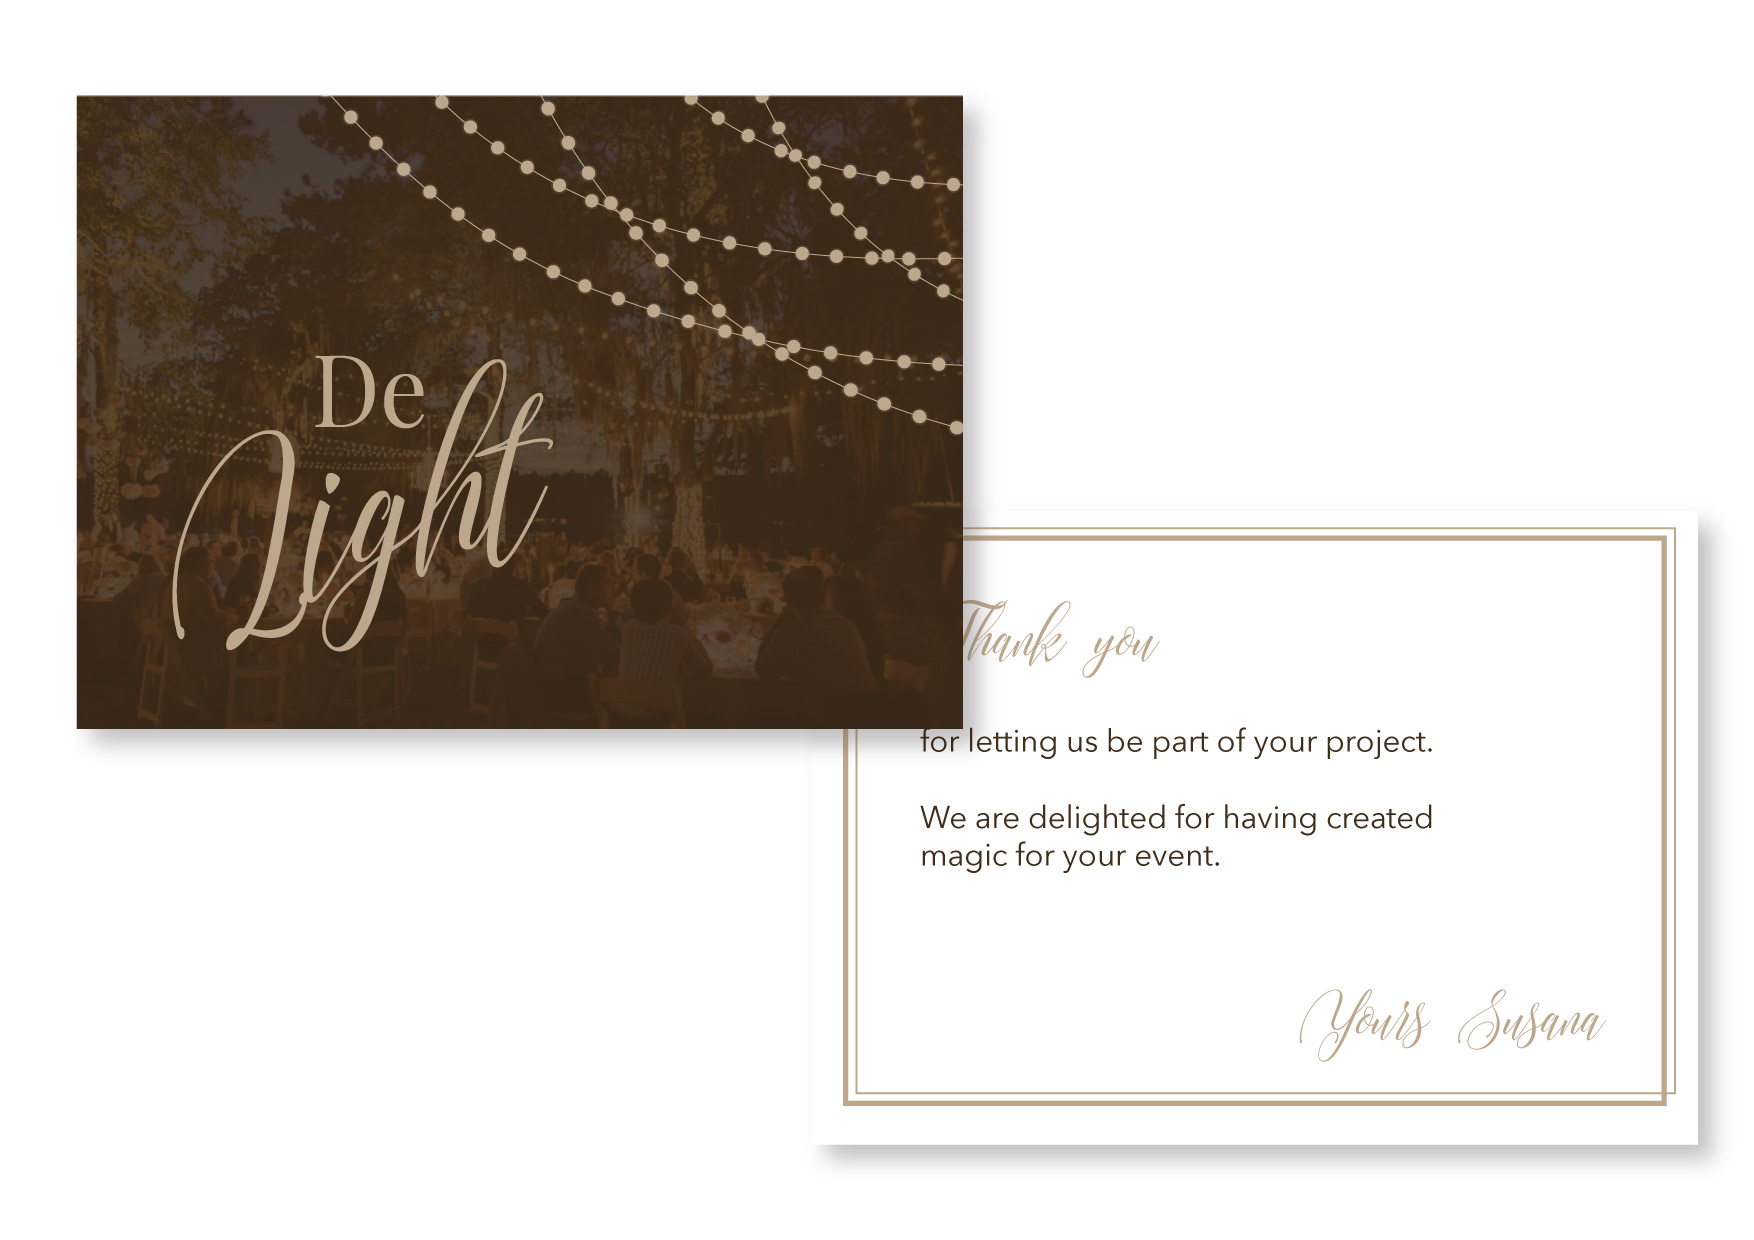 Thank you cards design | Collateral item design | MNFL Design